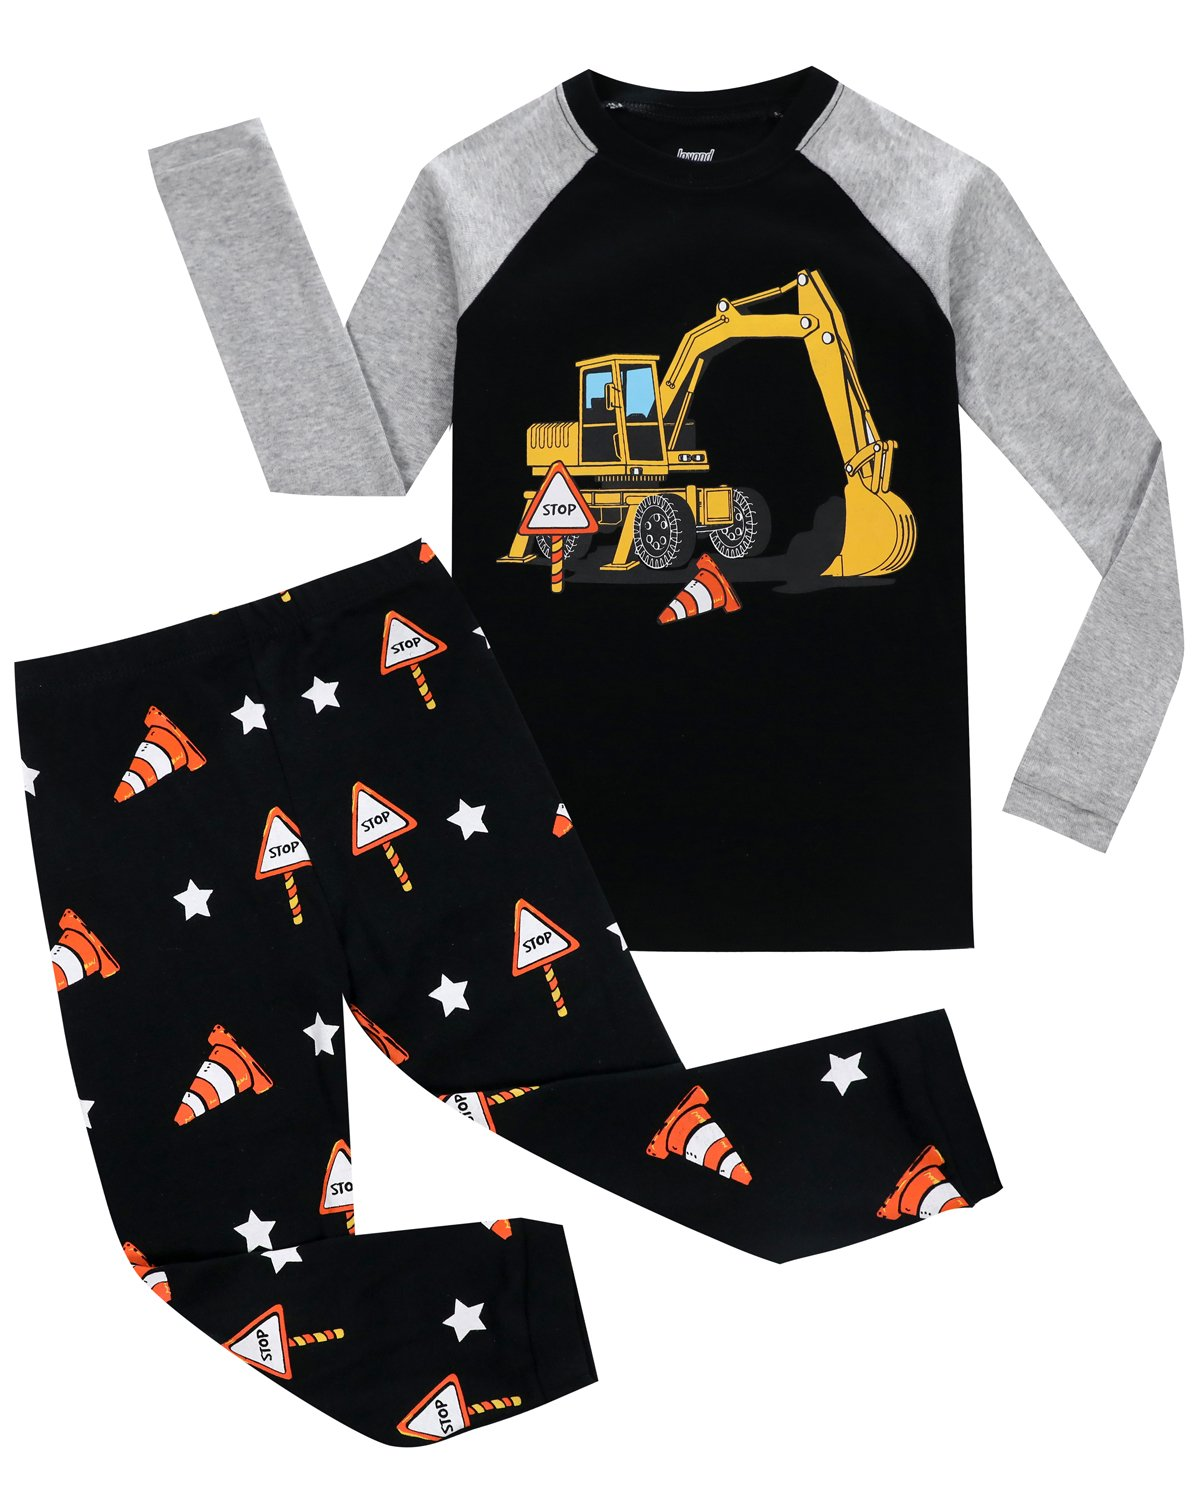 Joyond Boys Pajamas Set Excavator 100% Cotton Sleepwears 2 Piece Long Sleeve Clothes Toddler Kids PJS Set(HWTJ 4T)